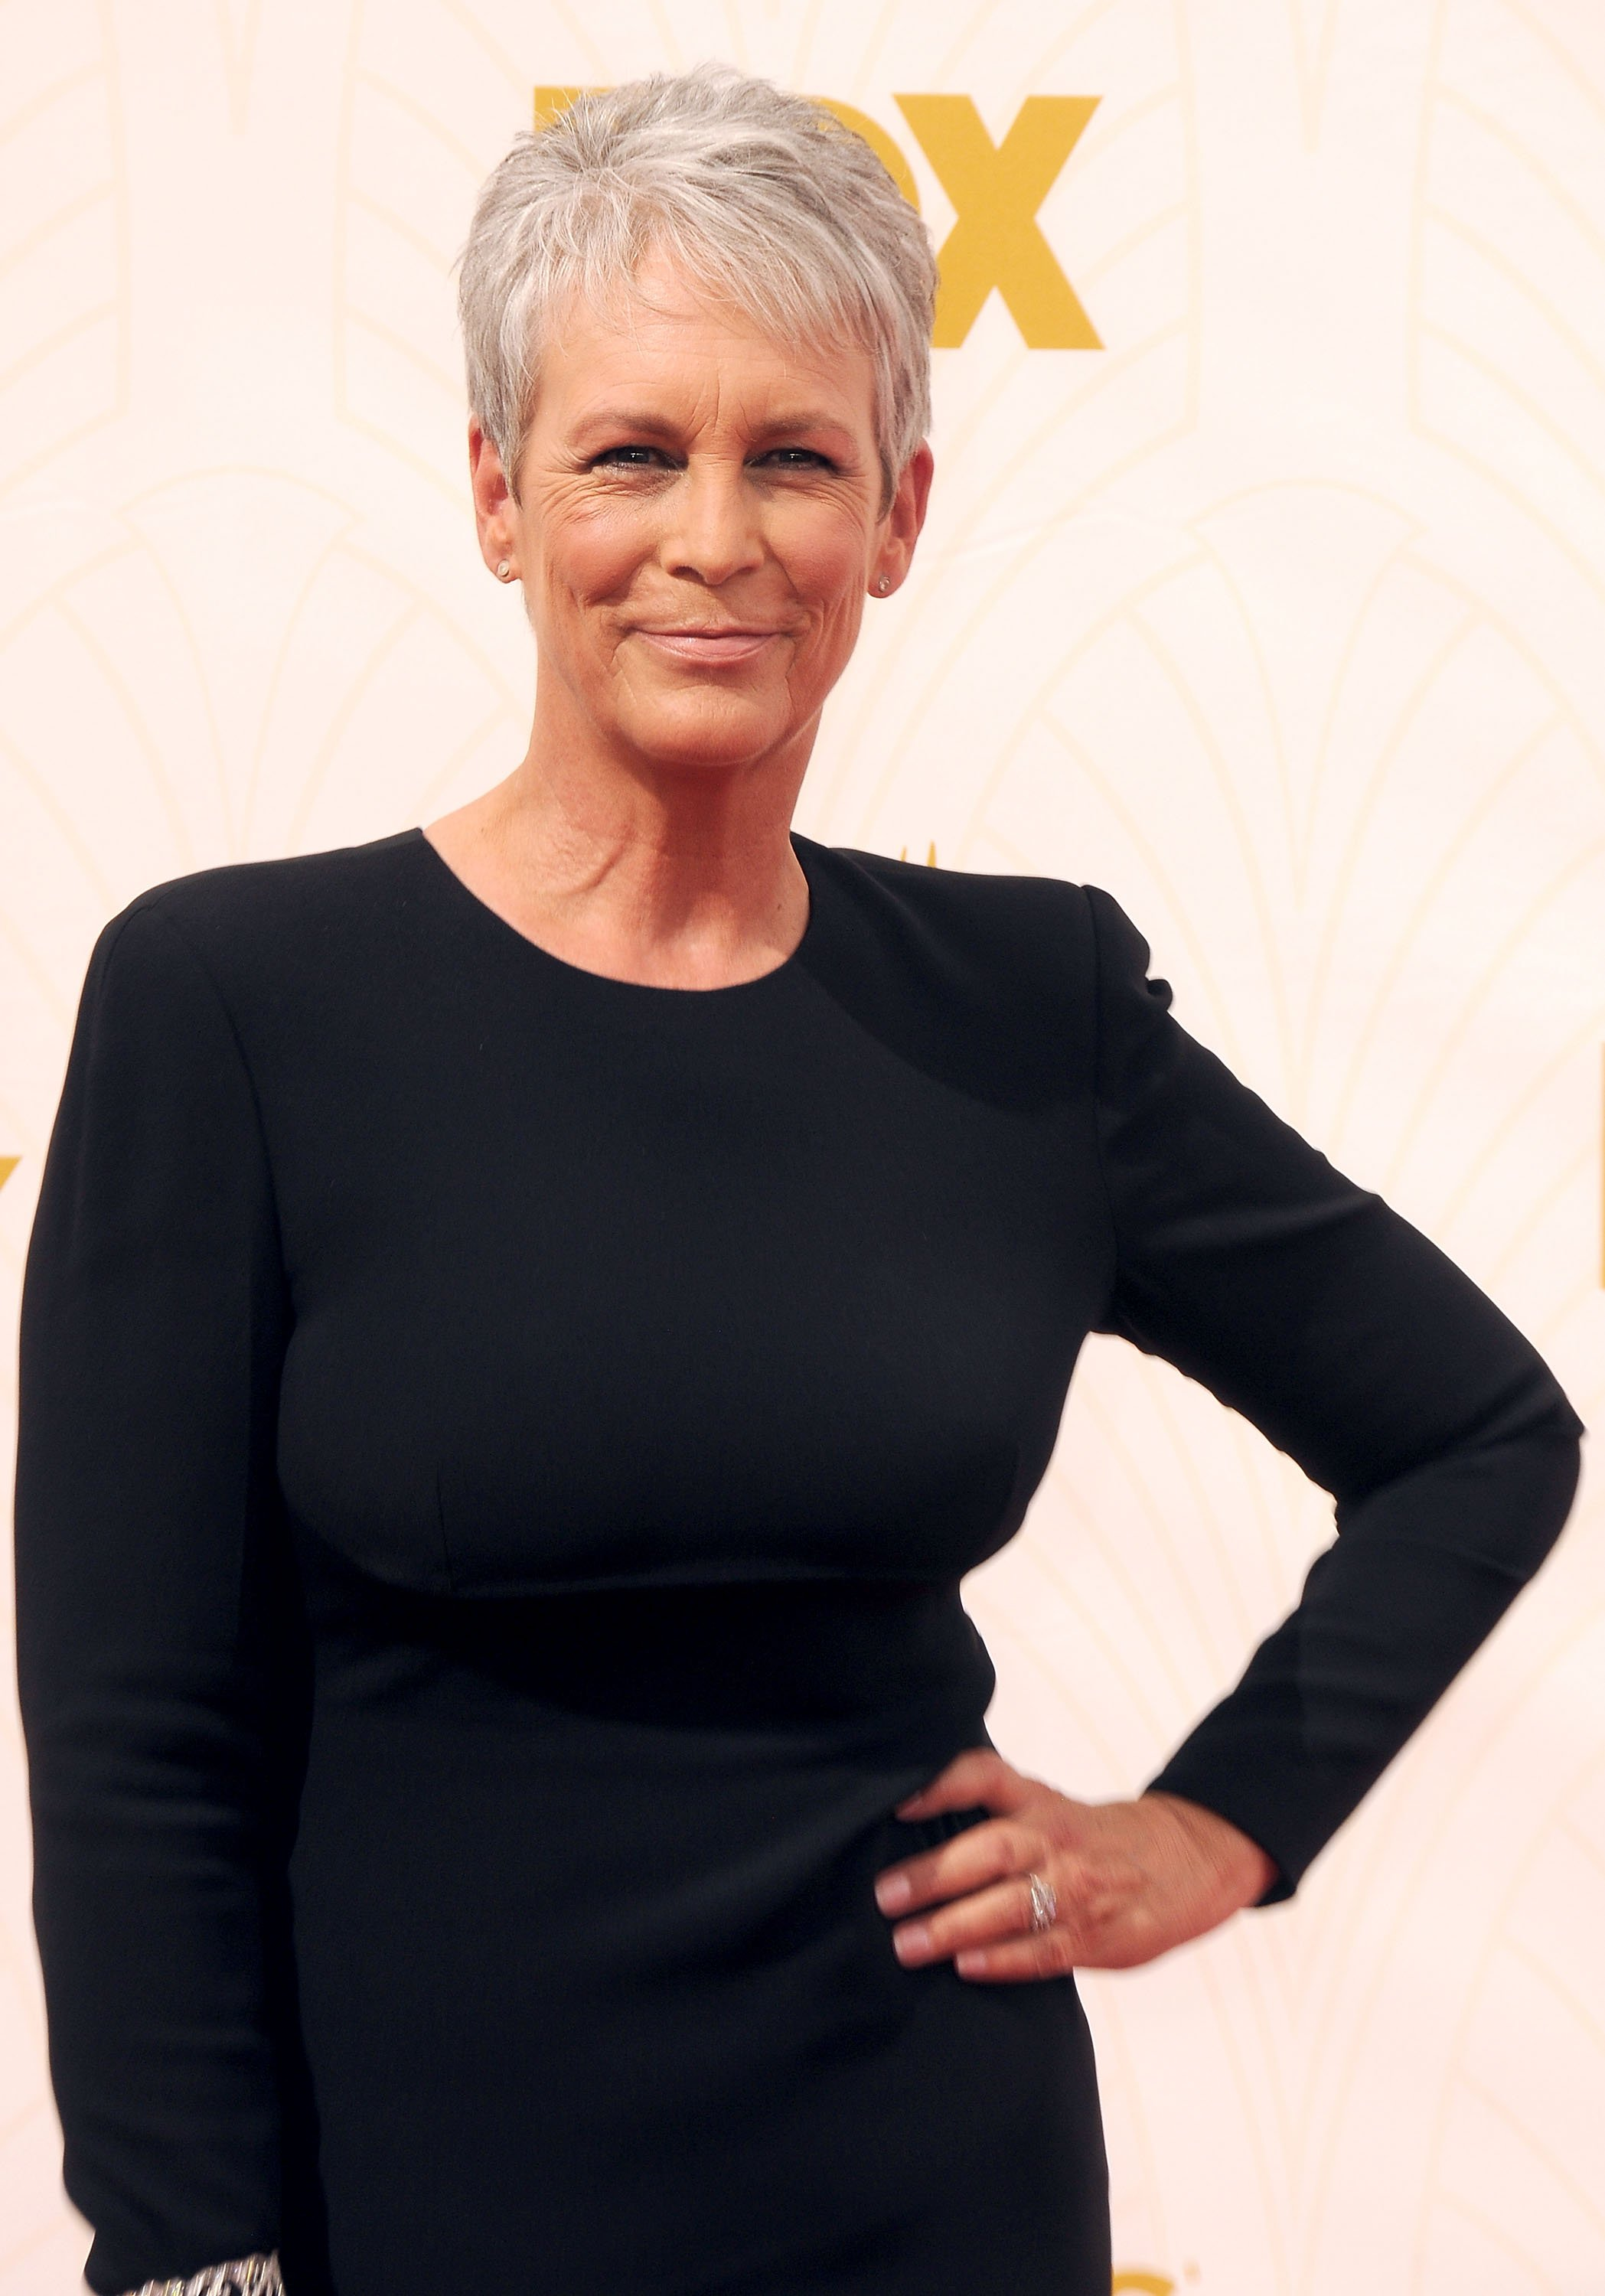 Jamie Lee Curtis attends the Annual Primetime Emmy Awards in Los Angeles, California on September 20, 2015 | Photo: Getty Images